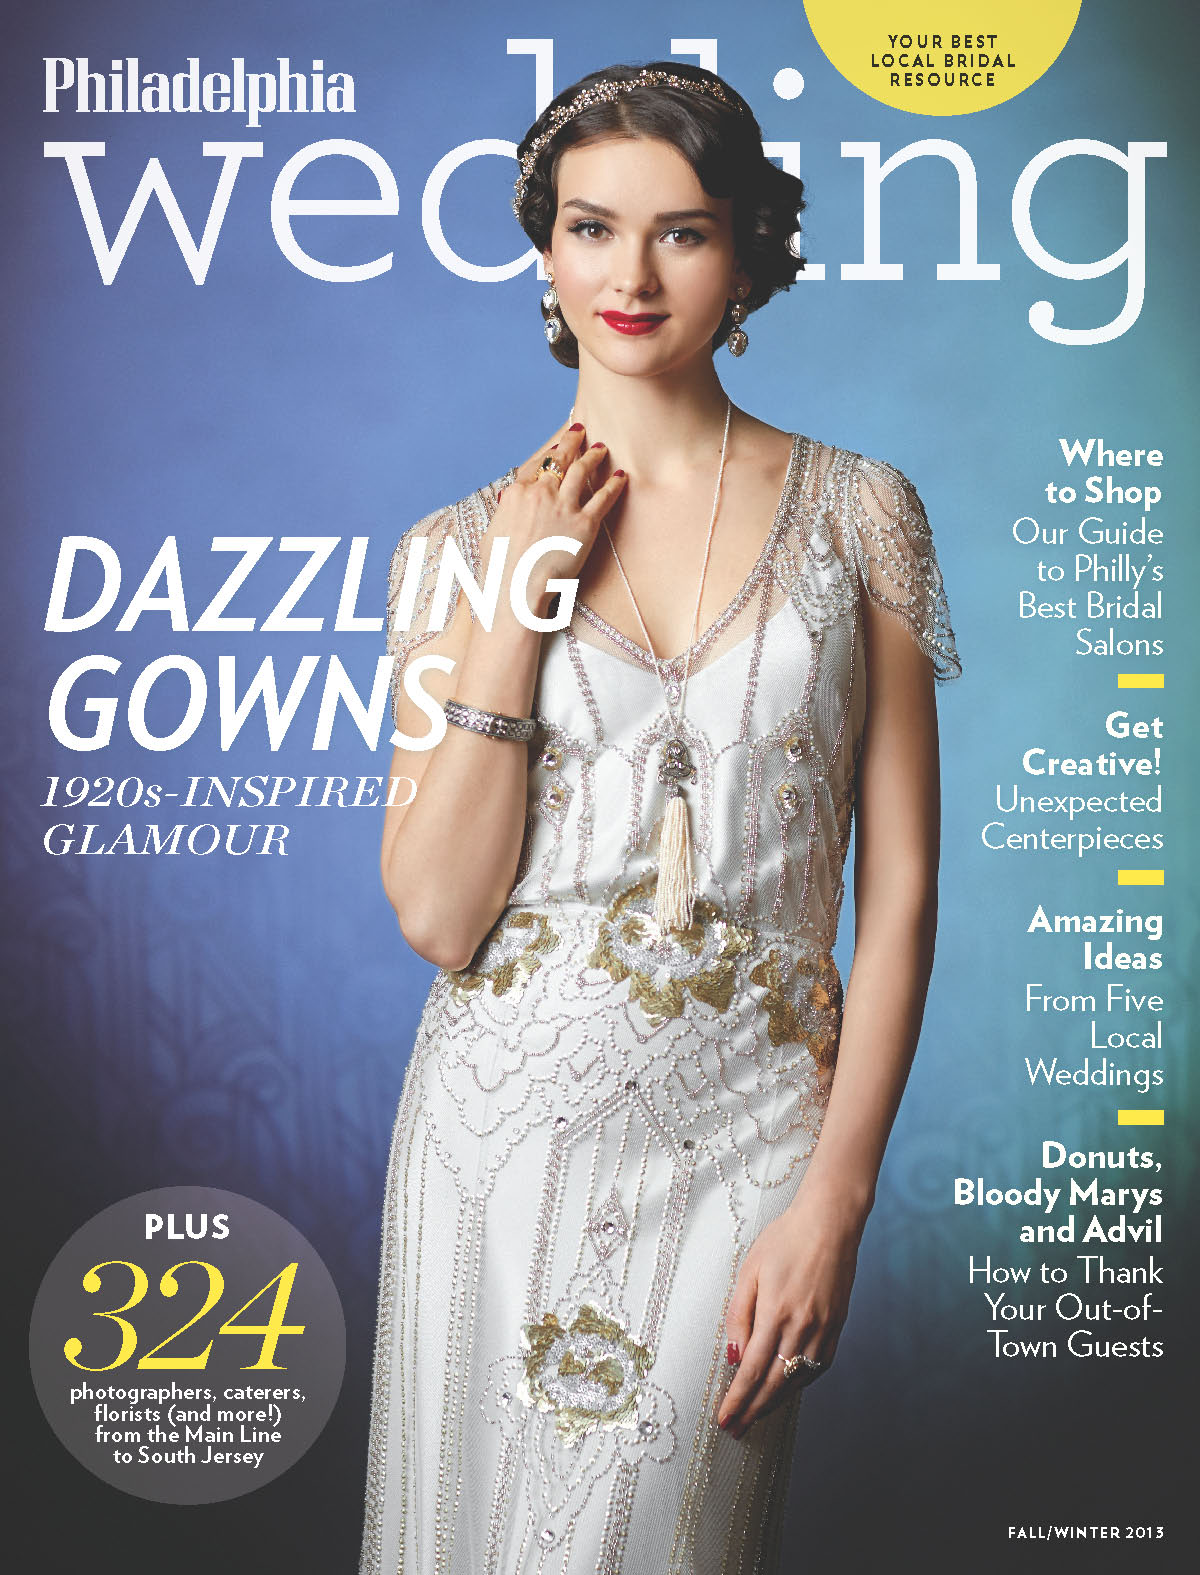 Sneak Peek: Philadelphia Wedding's Fall/Winter 2013 Issue!